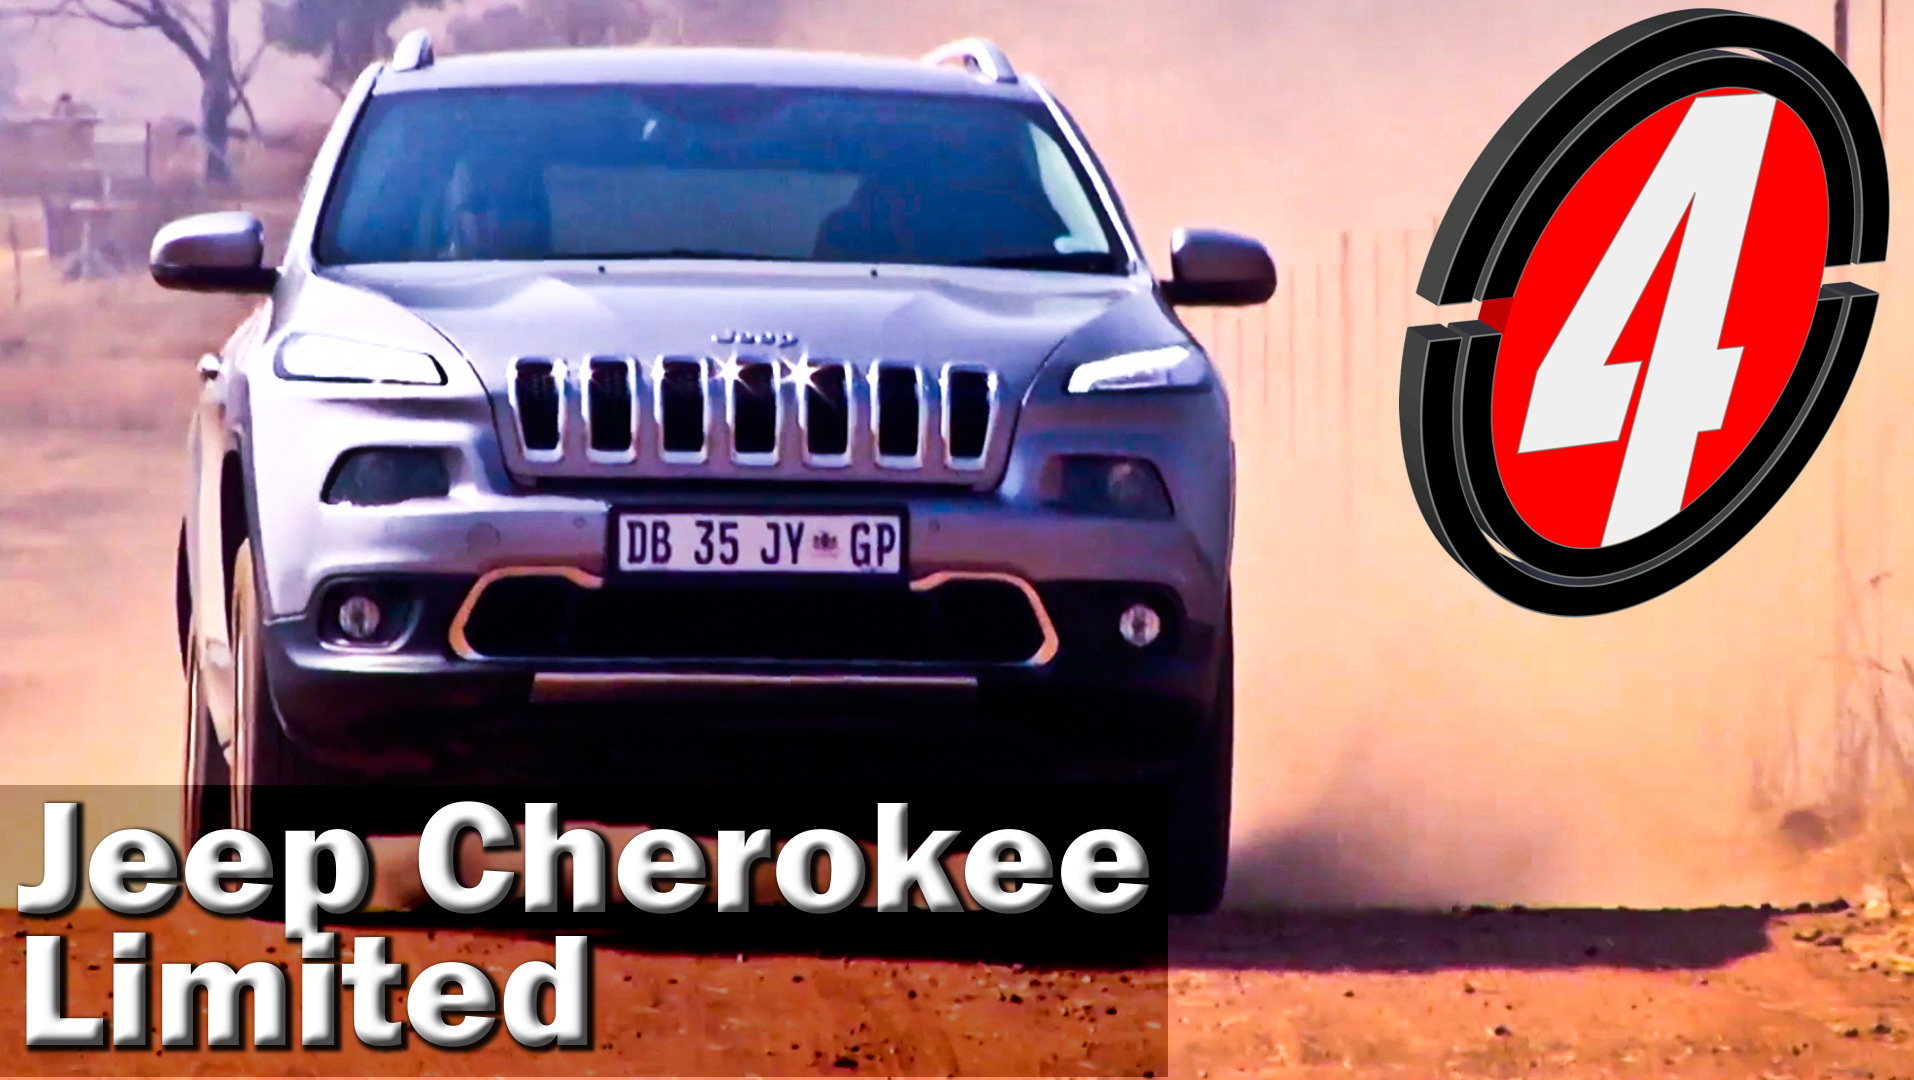 Jeep Cherokee Limited (2014) : Video Review